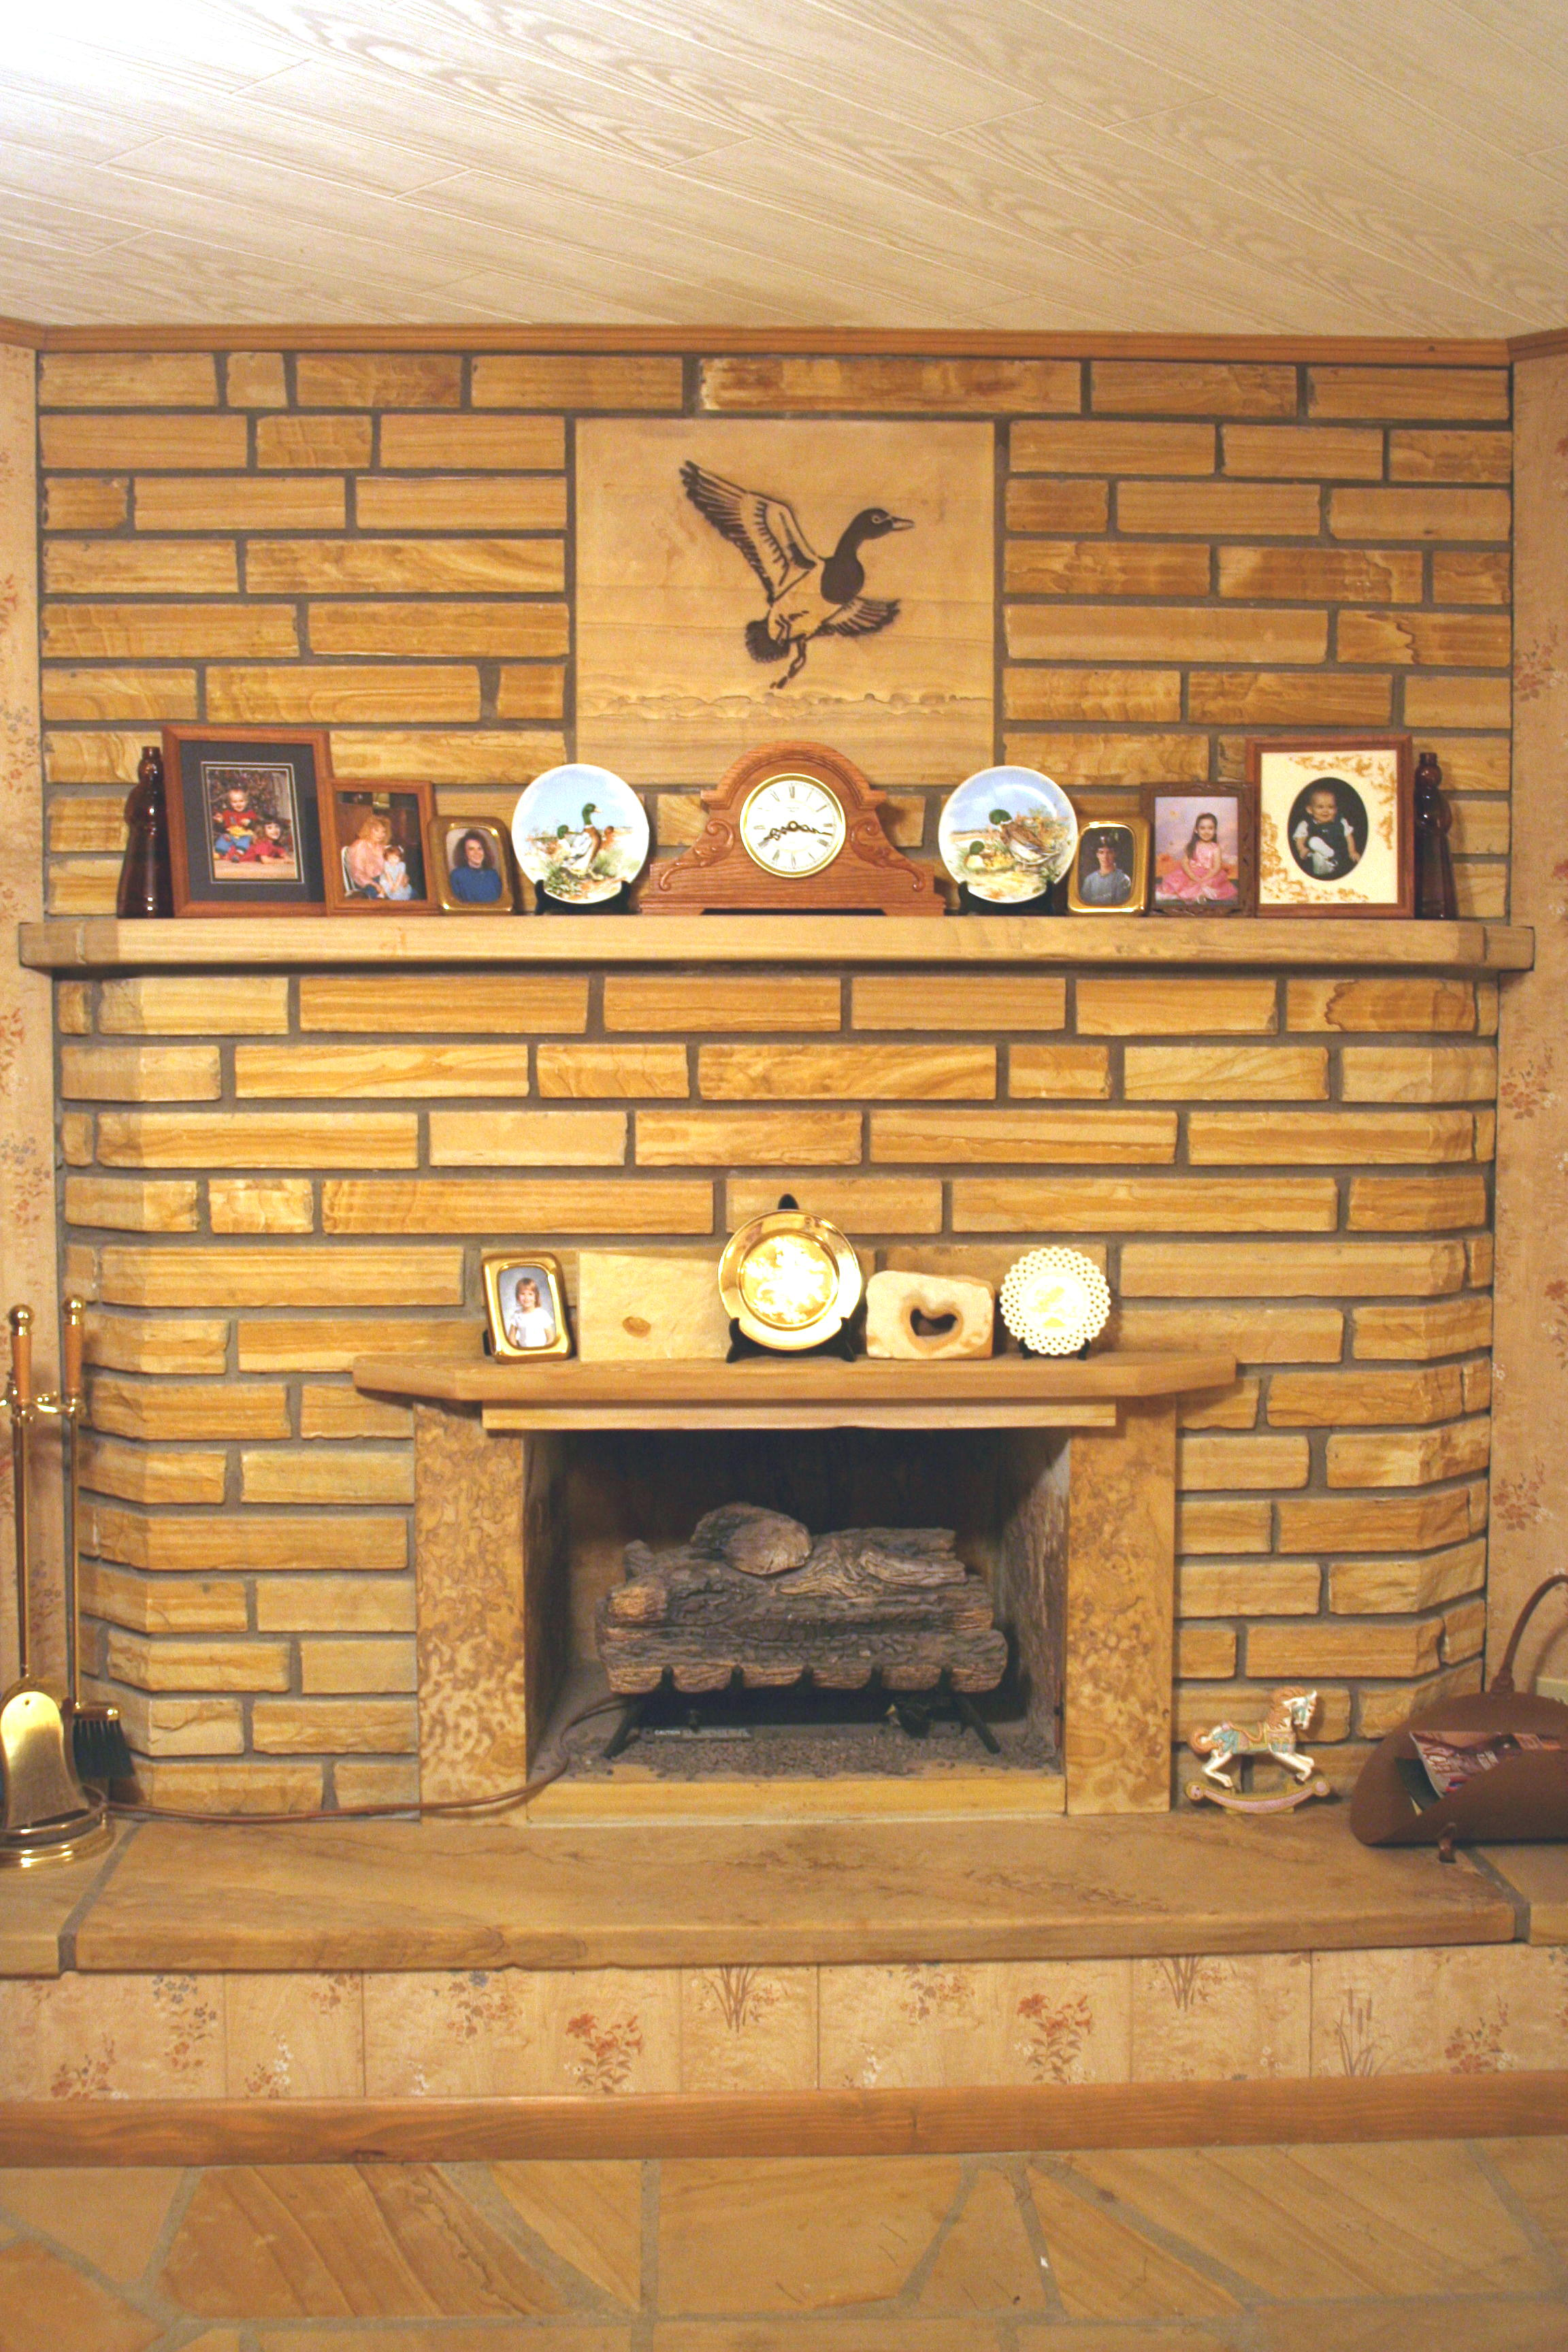 ozarkfireplace.jpg